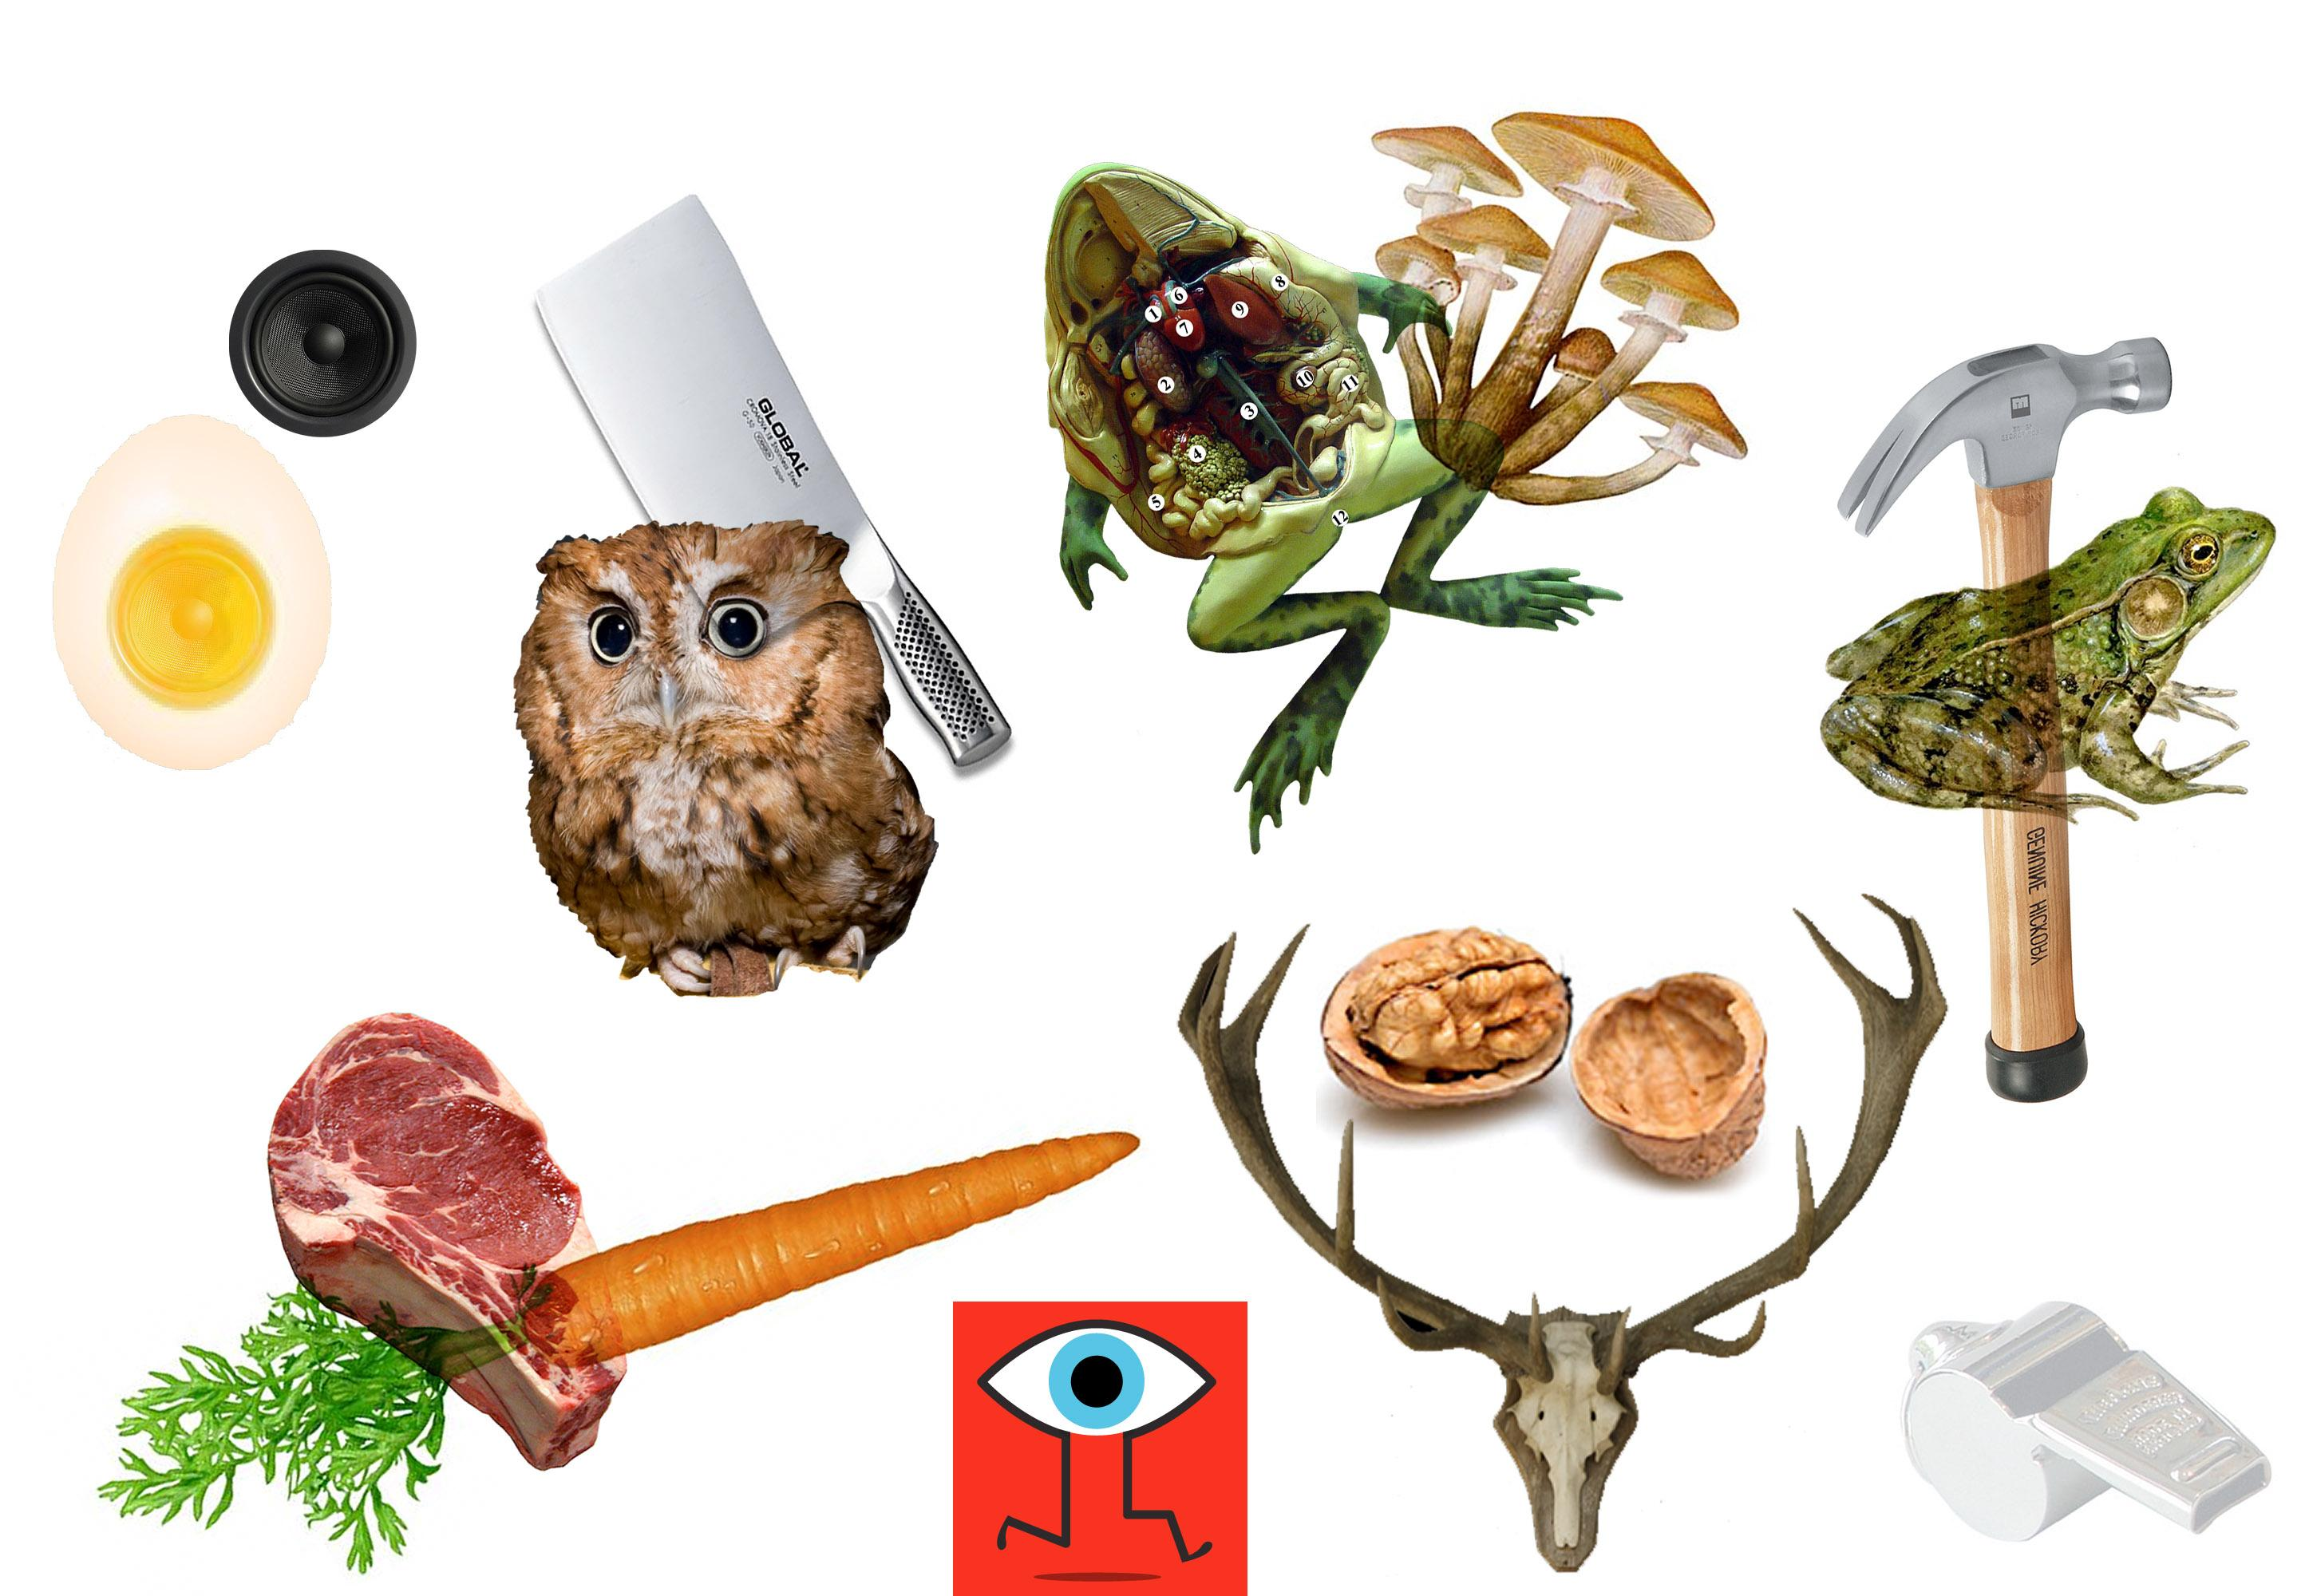 Meat eating vegetables - image 4 - student project